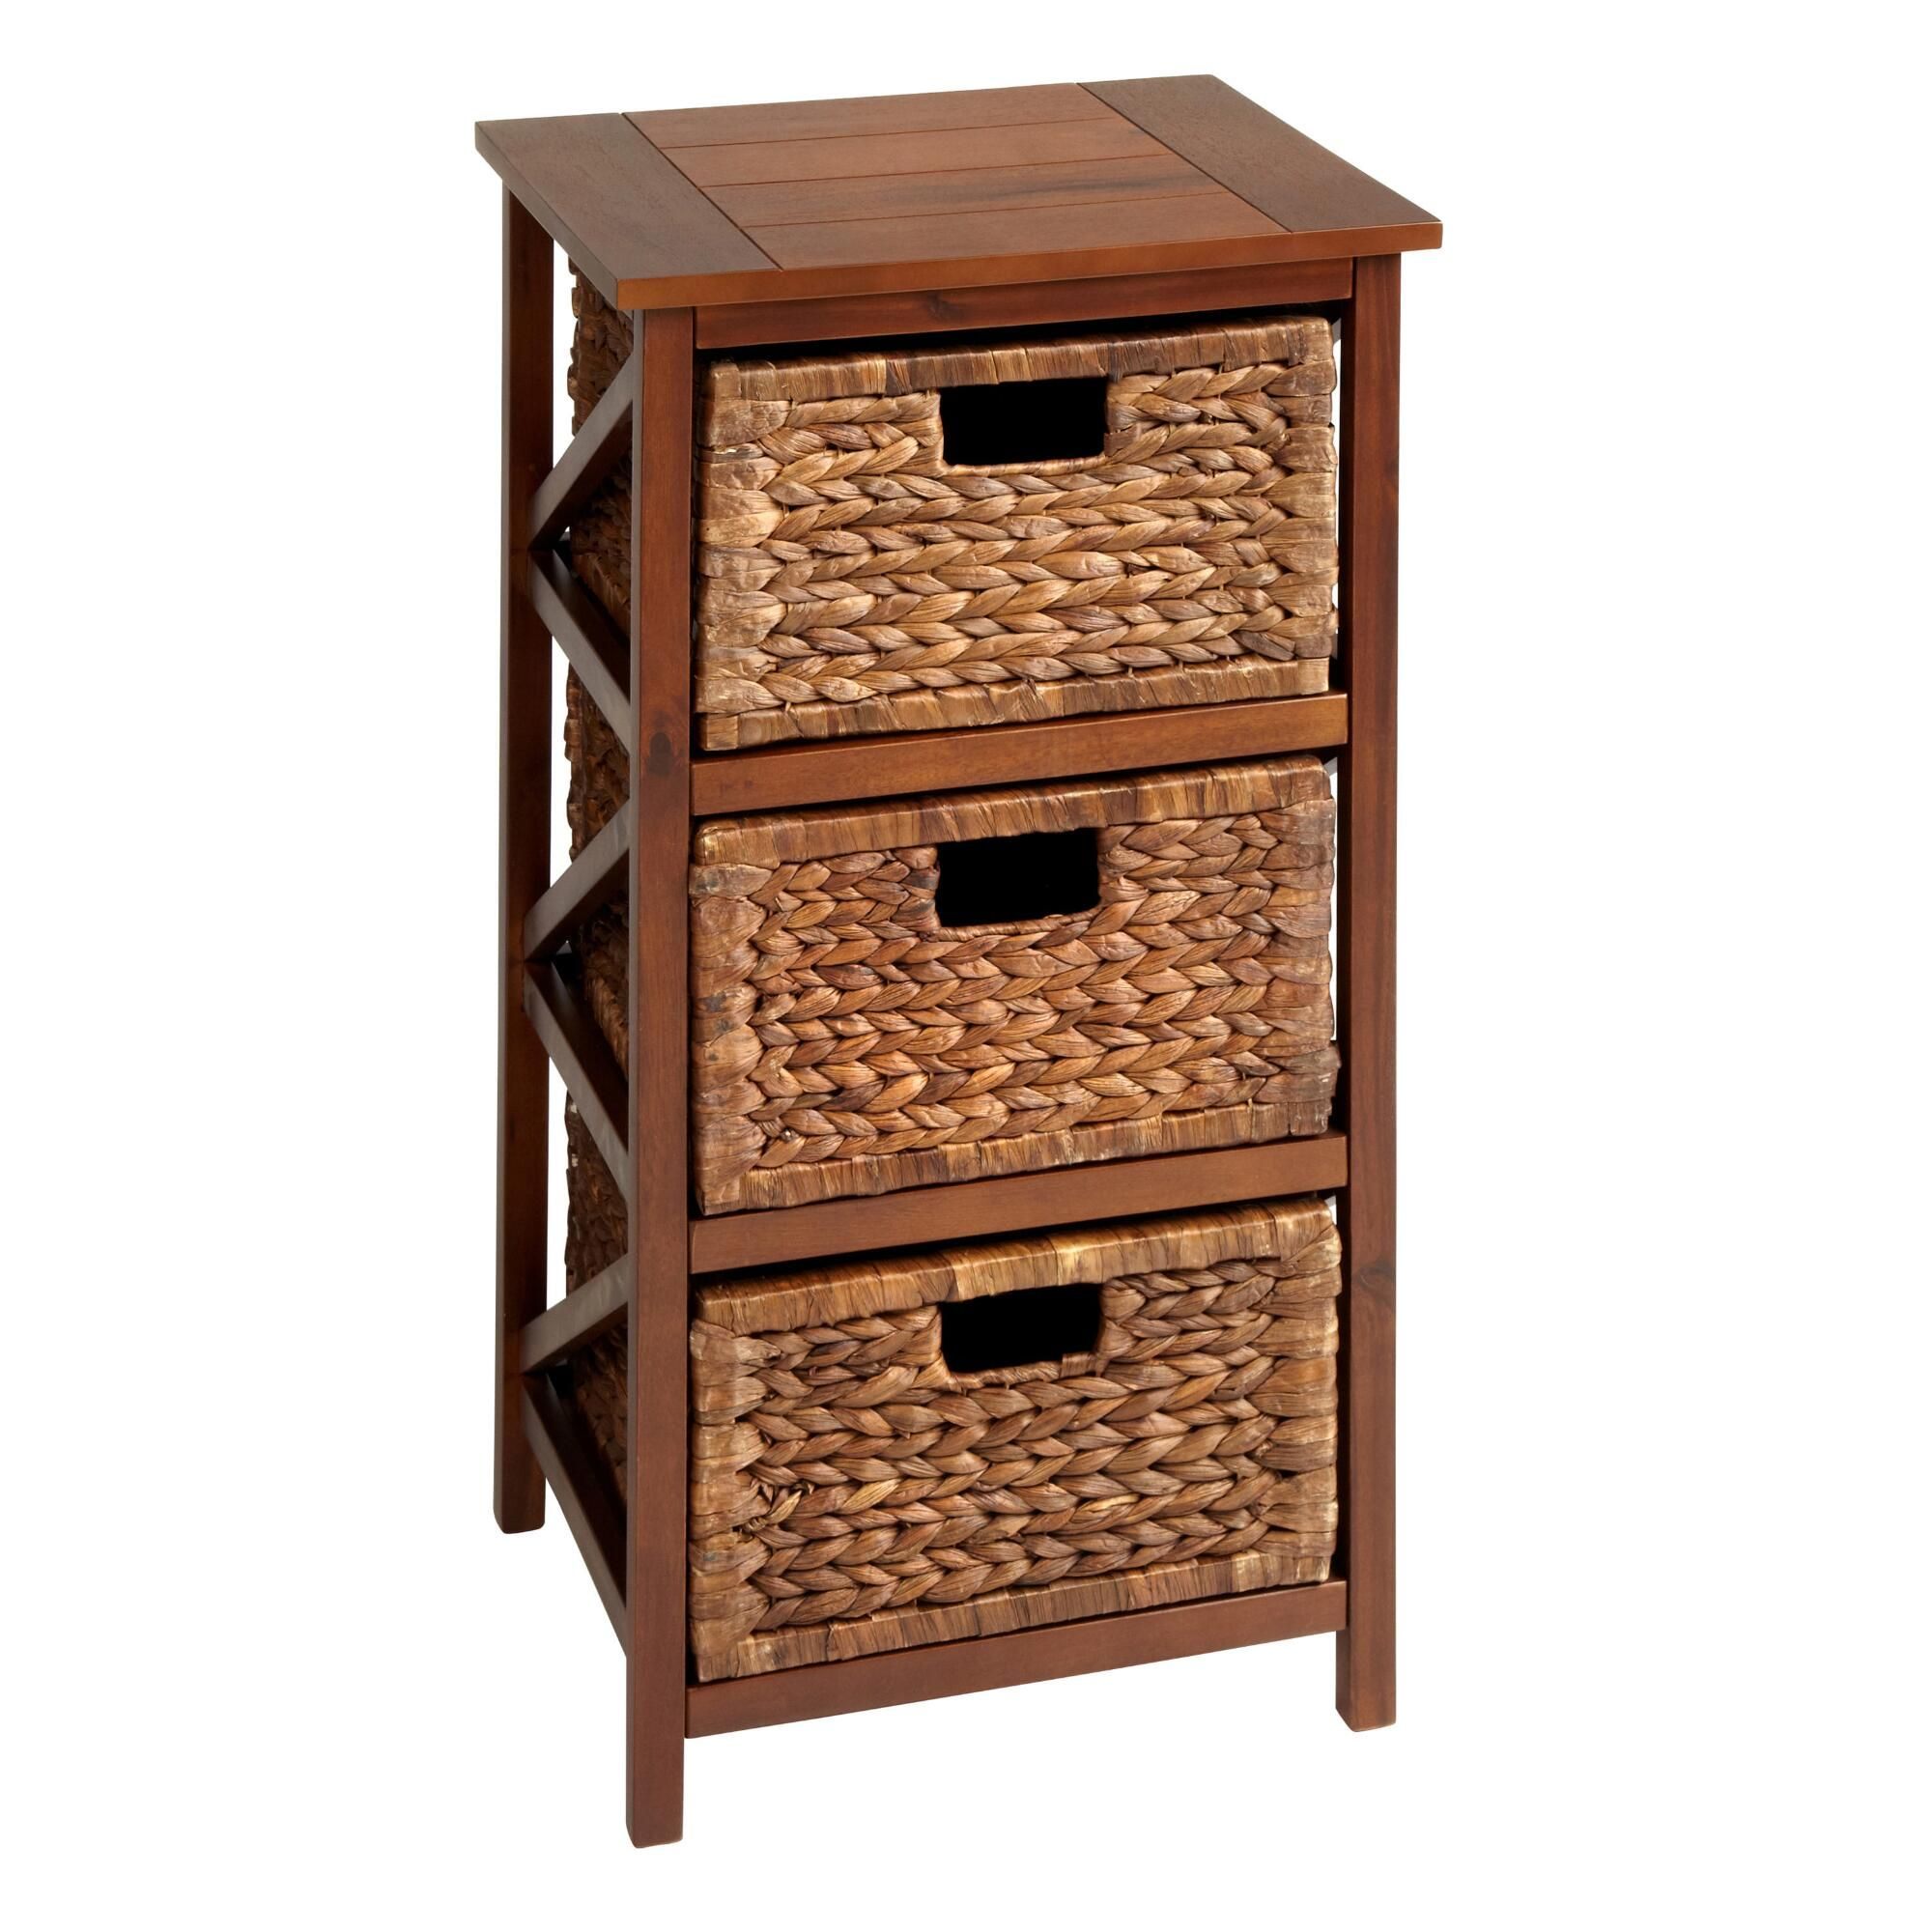 3-Basket Pecan Wood Storage Chest   Christmas Tree Shops andThat!